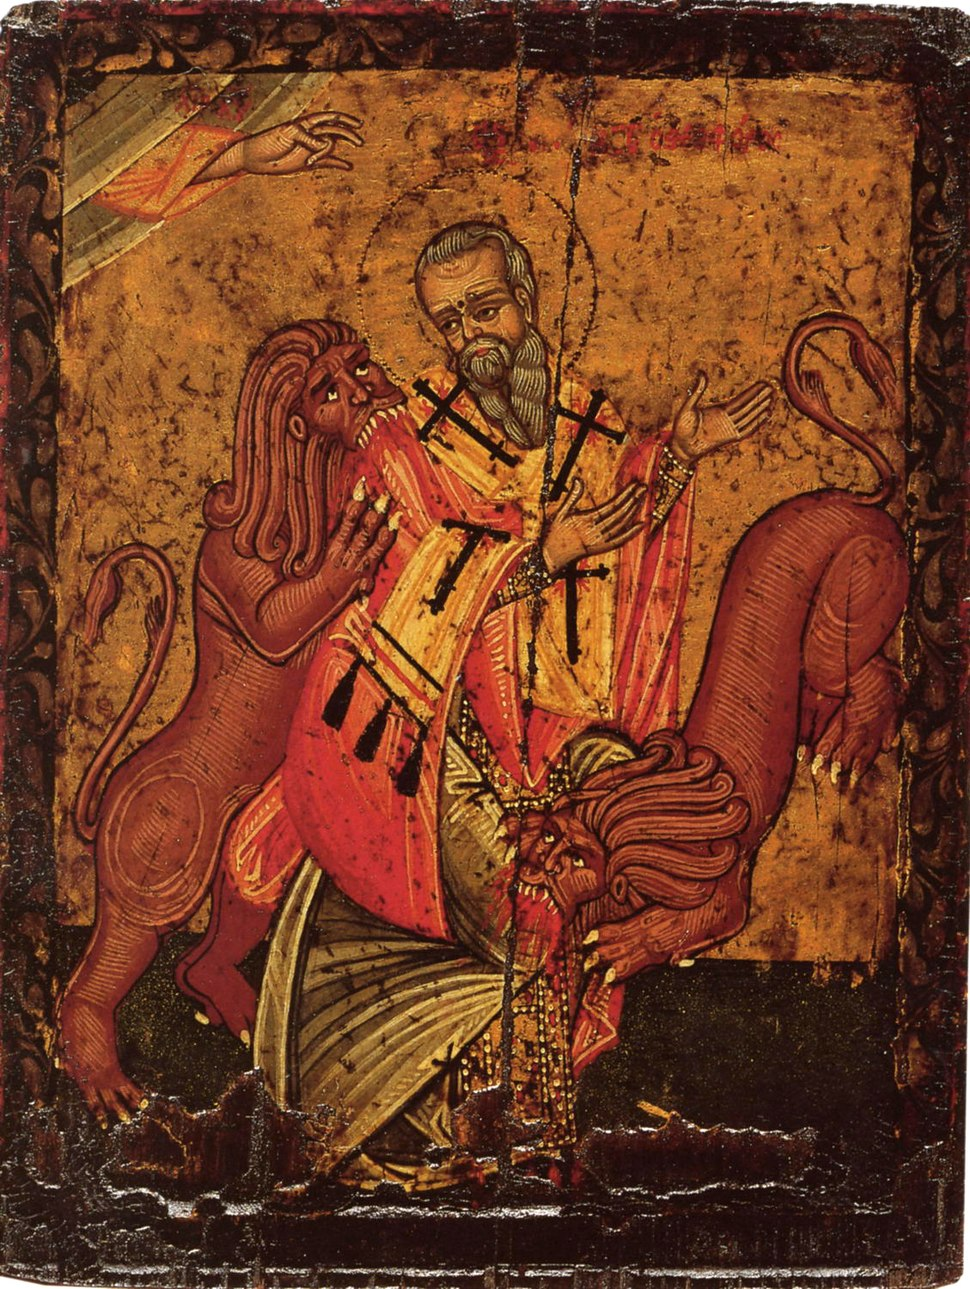 Ignatius of Antiochie, poss. by Johann Apakass (17th c., Pushkin museum)